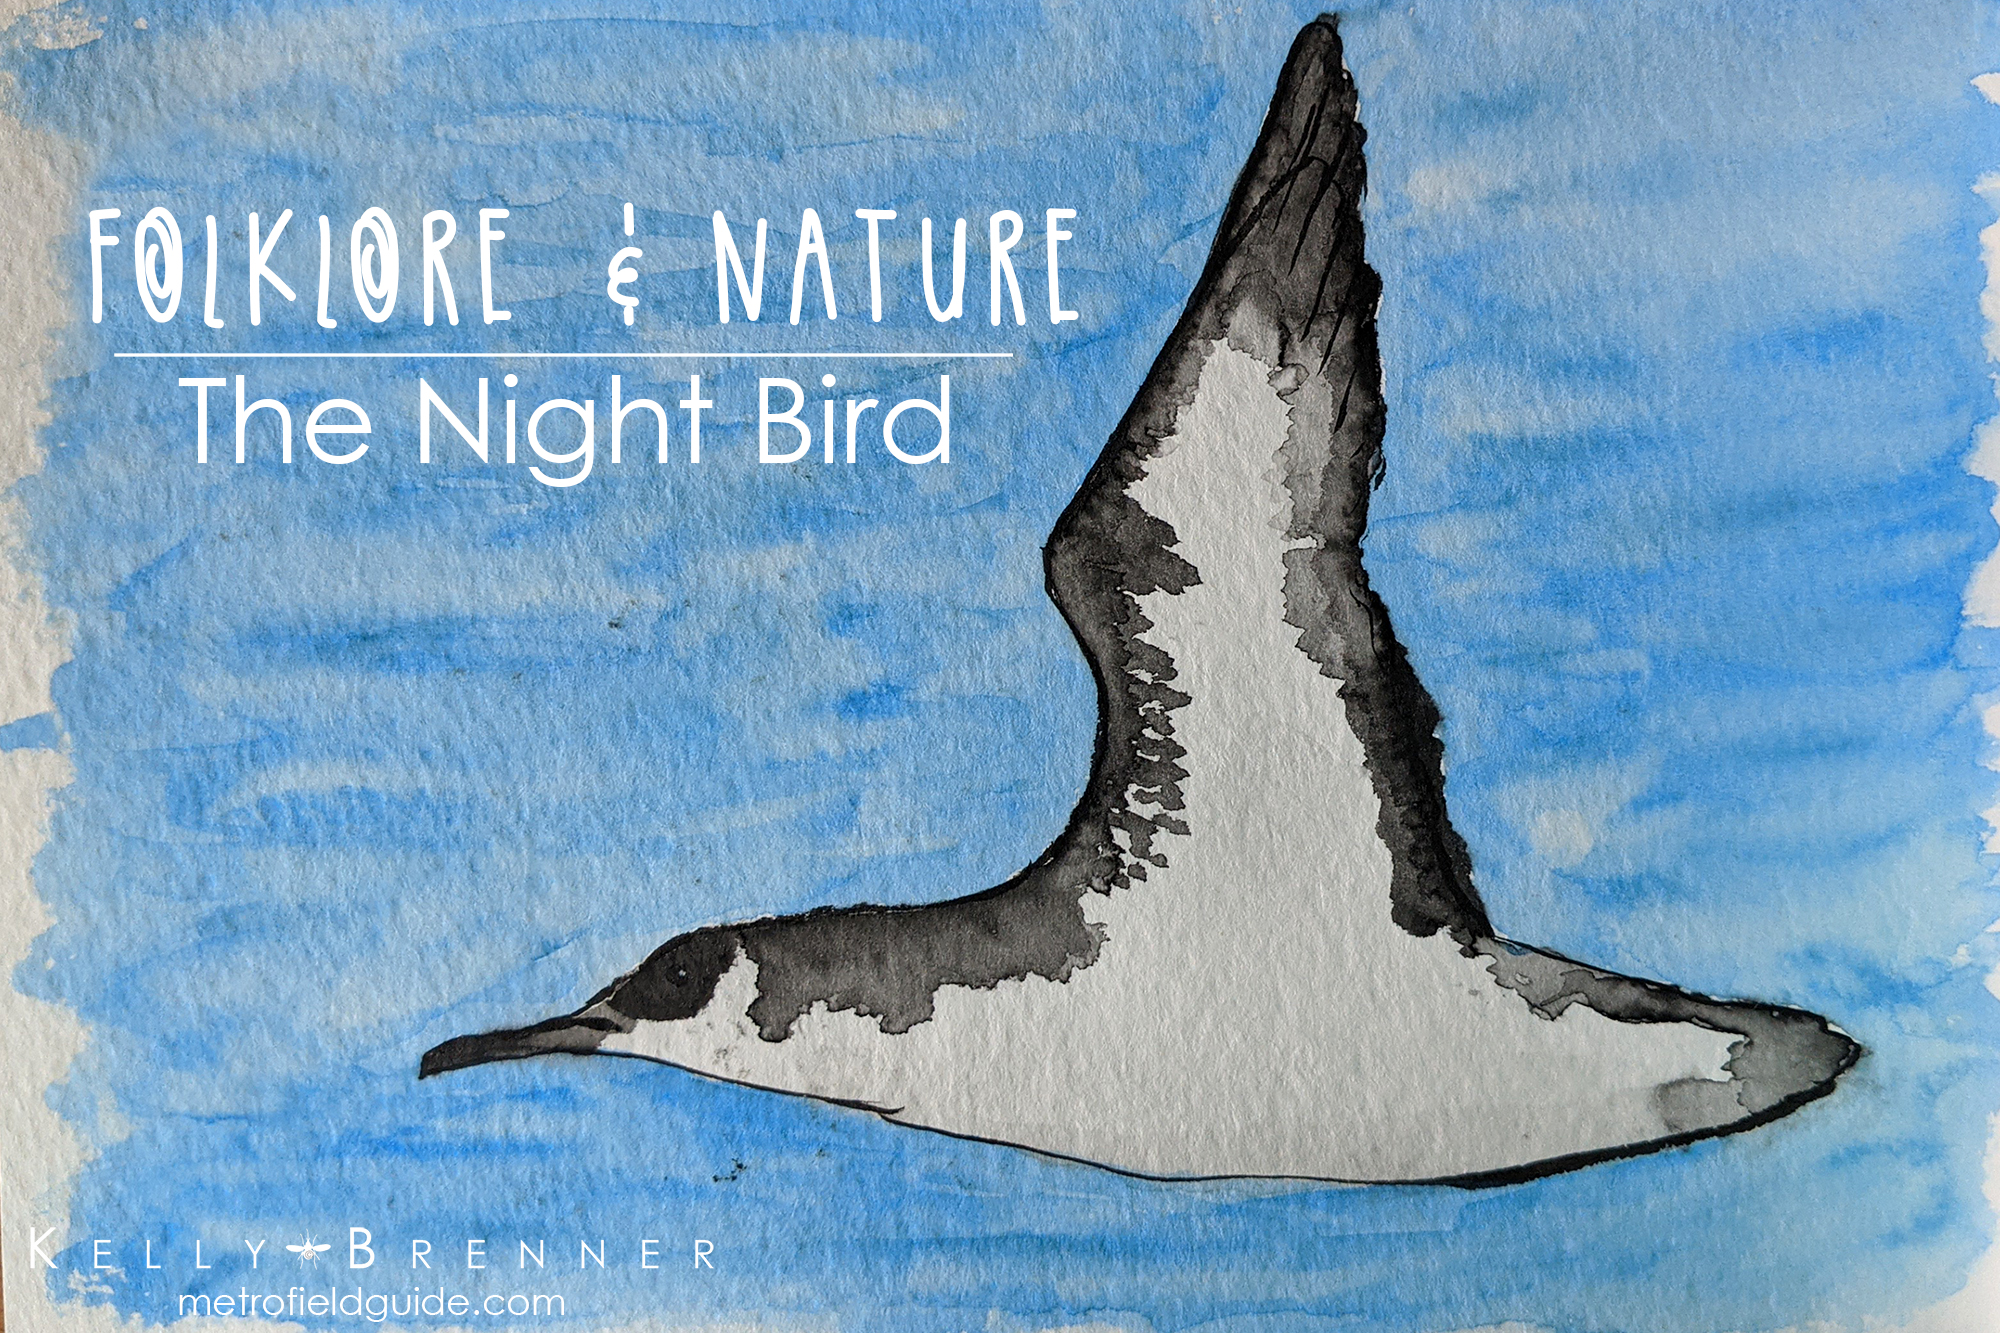 Folklore & Nature: The Night Bird